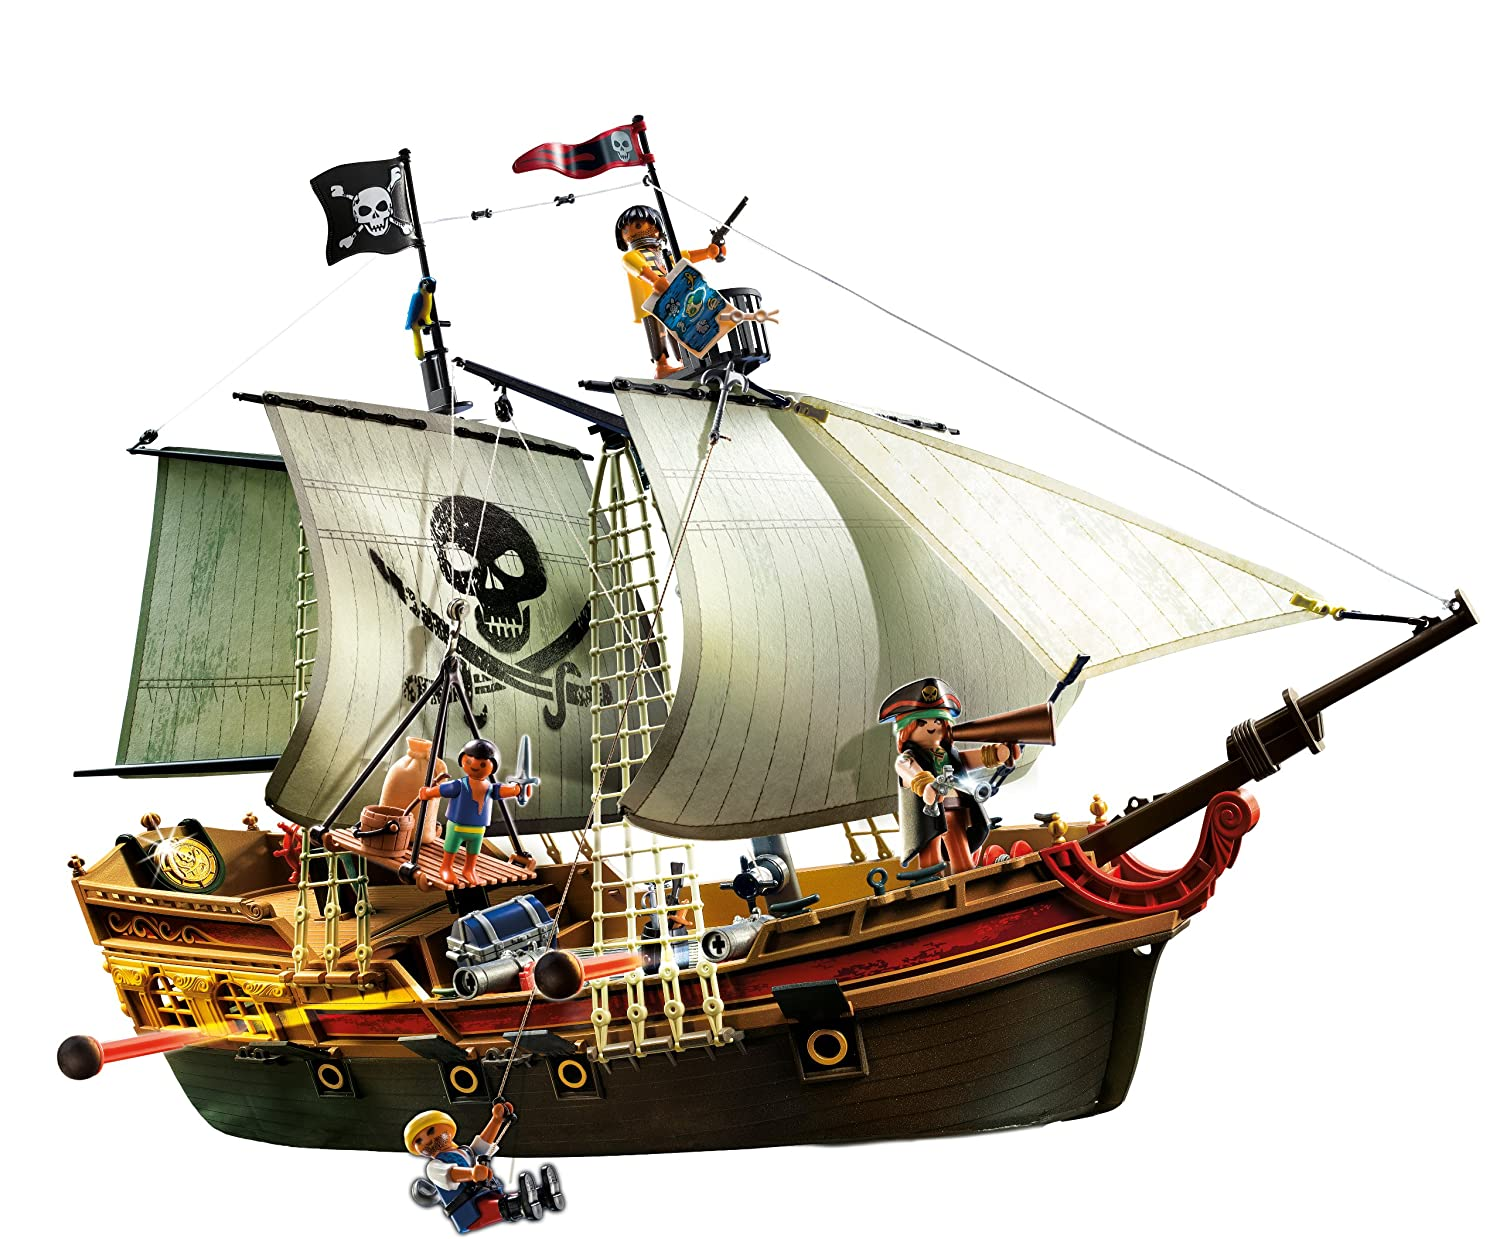 Amazoncom PLAYMOBIL Pirates Ship Discontinued by manufacturer